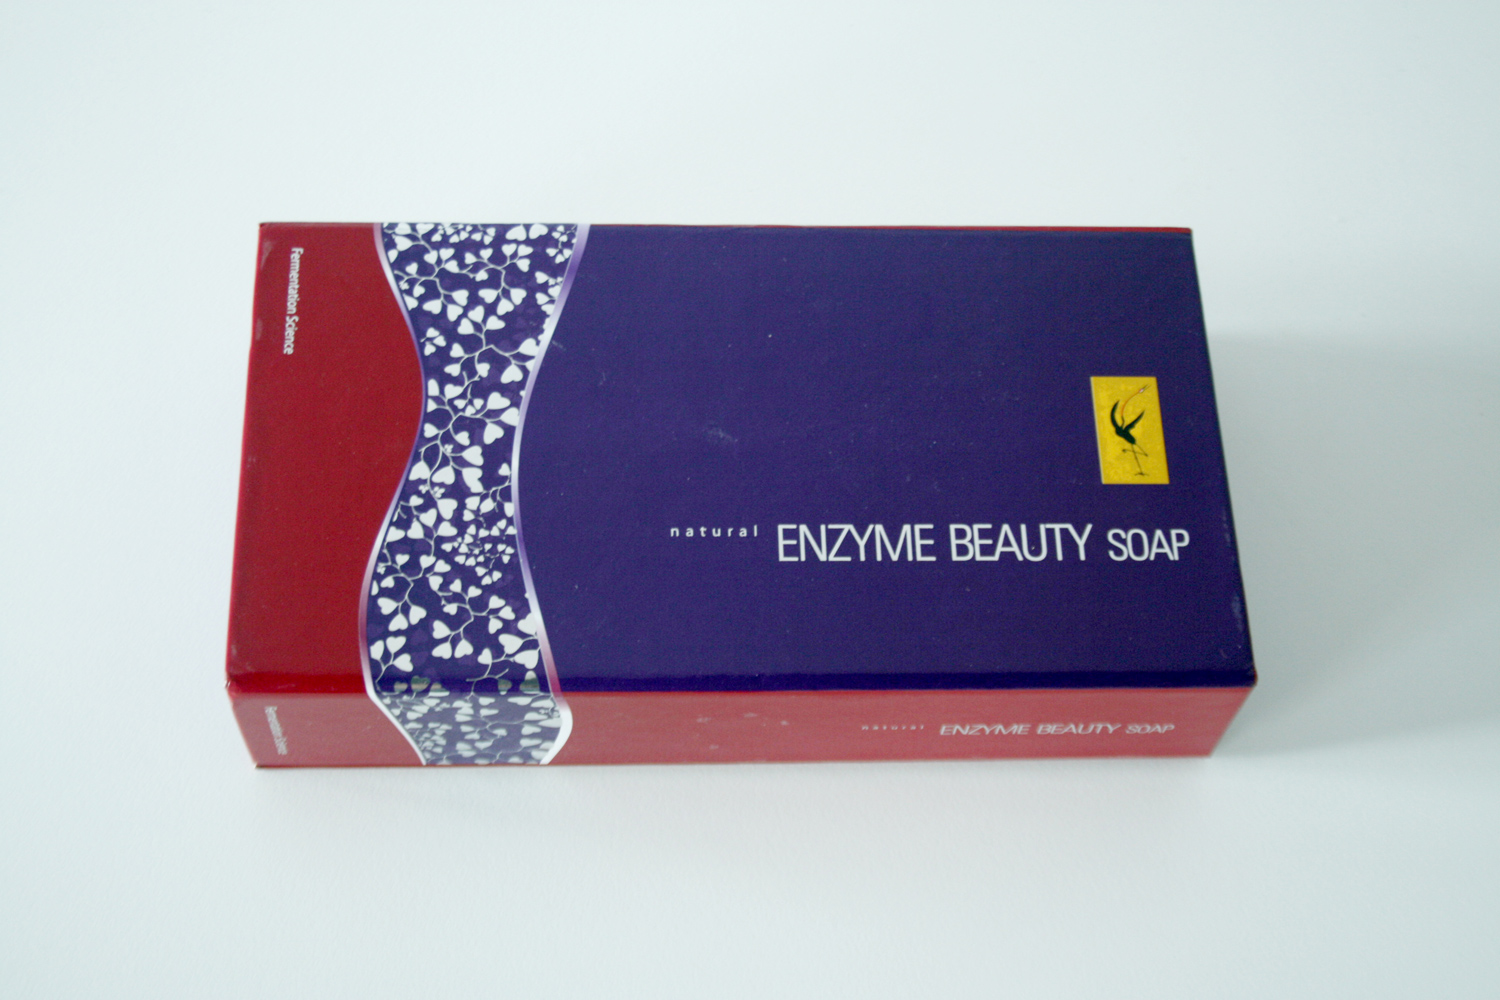 NATURAL ENZYME BEAUTY SOAP